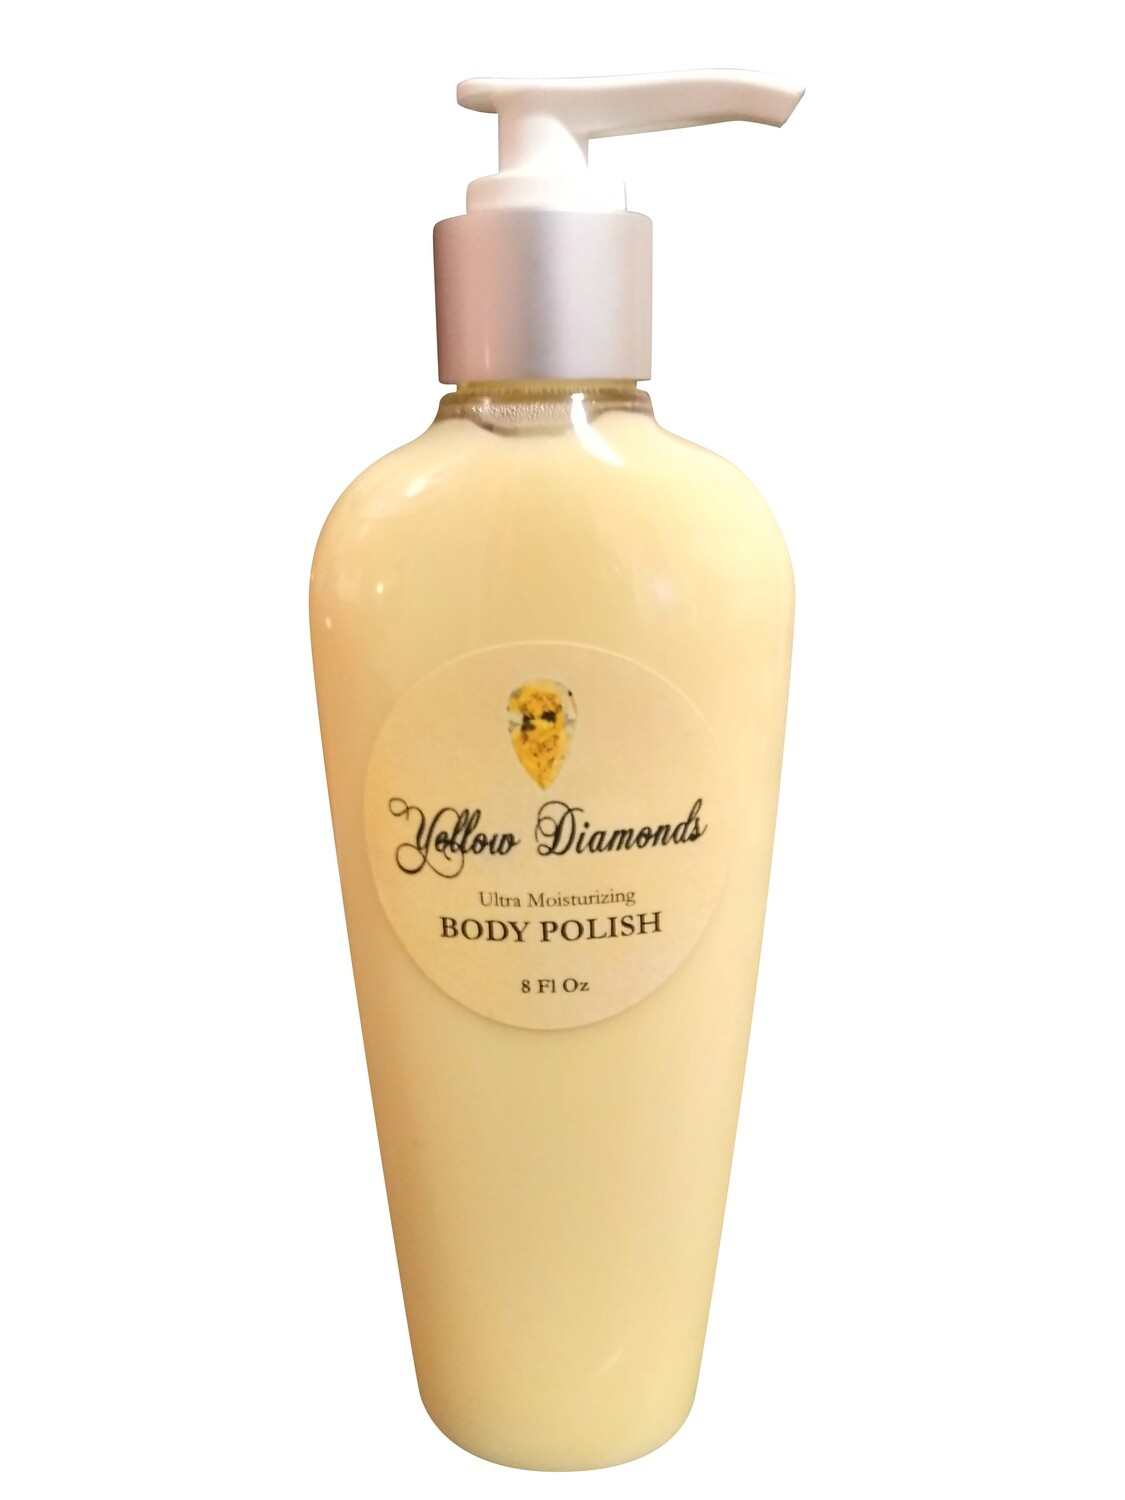 Yellow Diamonds Ultra Moisturizing Body Polish